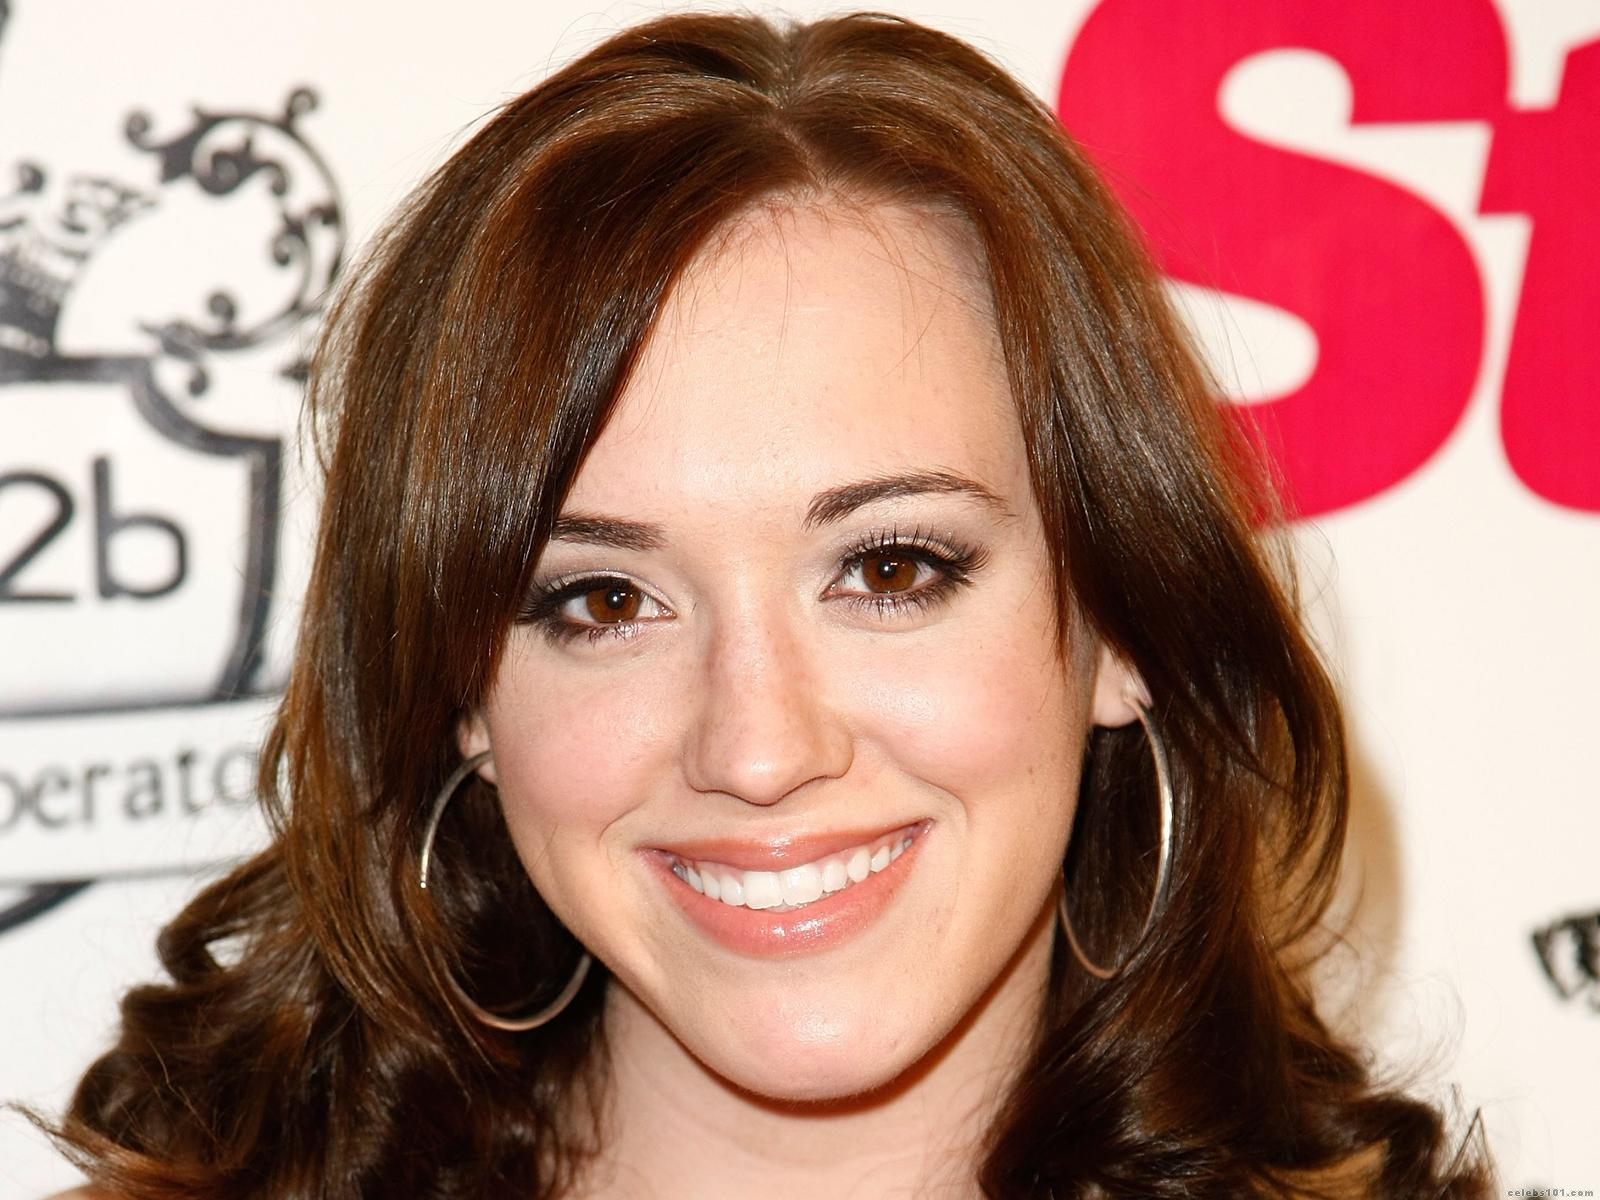 Andrea Bowen Naked Beautiful celebrities and famous women: 01/01/12